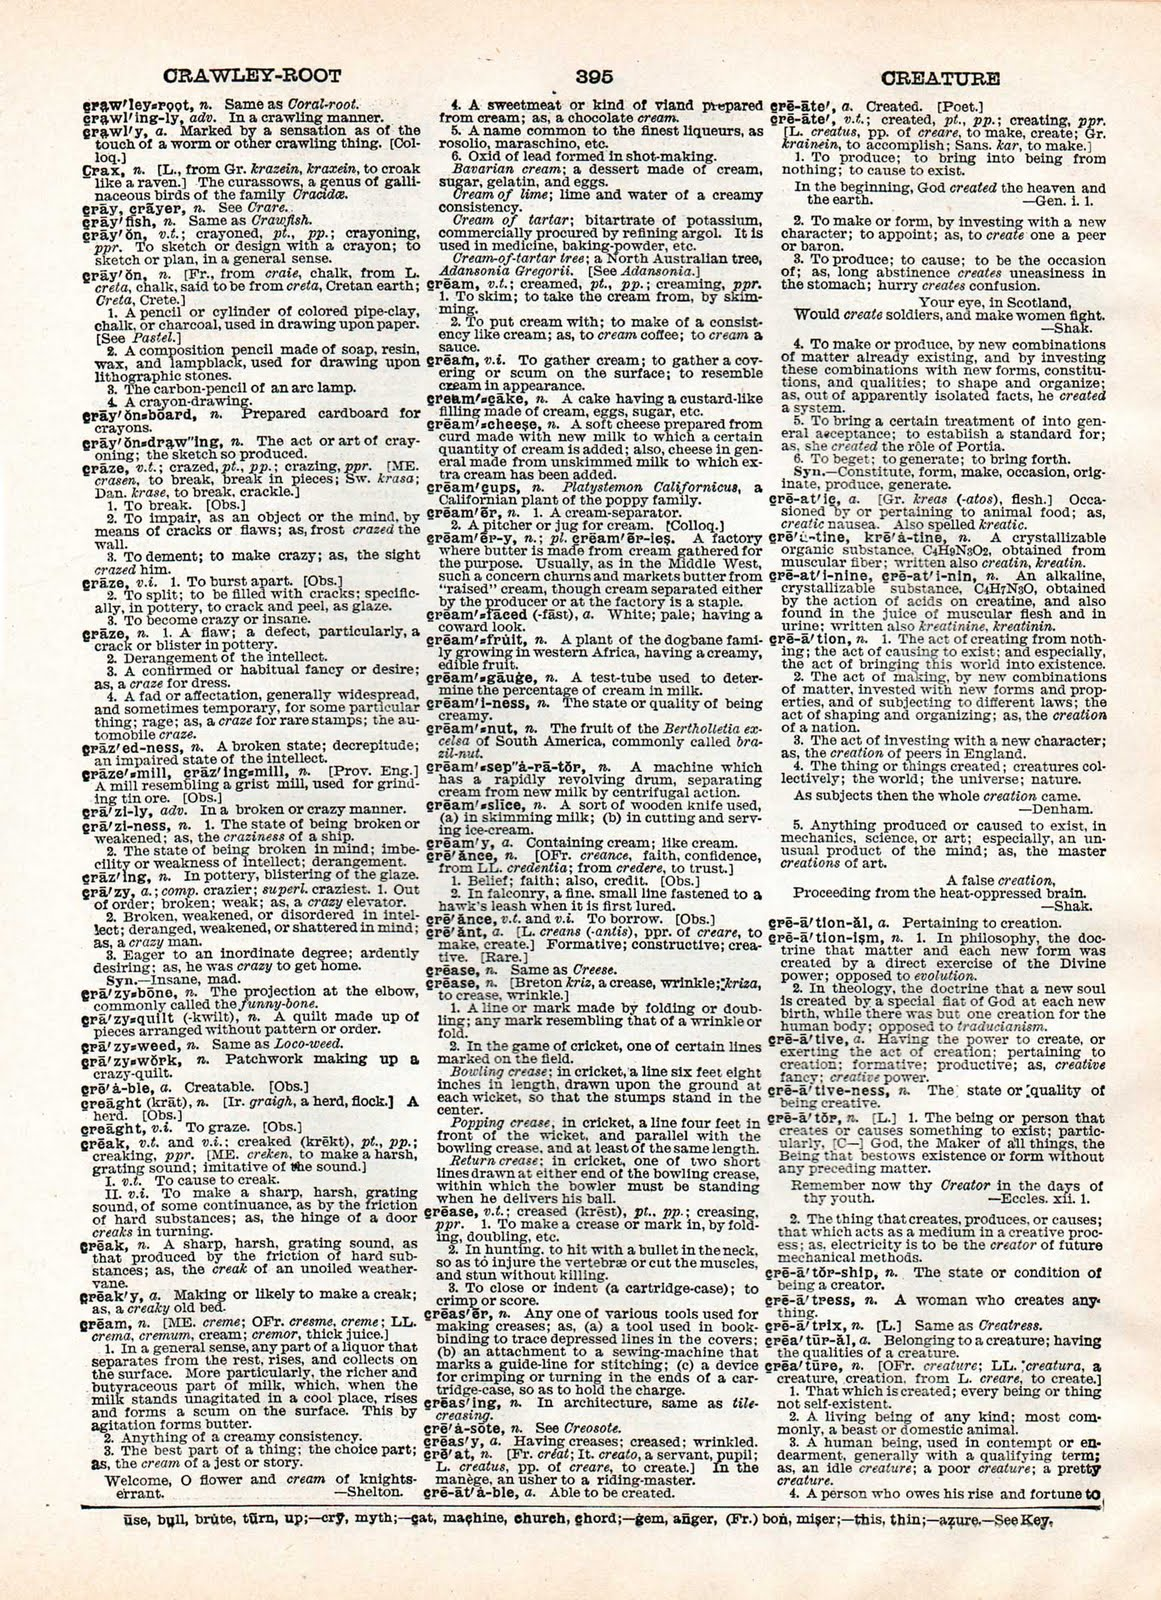 image about Printable Vintage Dictionary Pages titled Basic dictionary definition